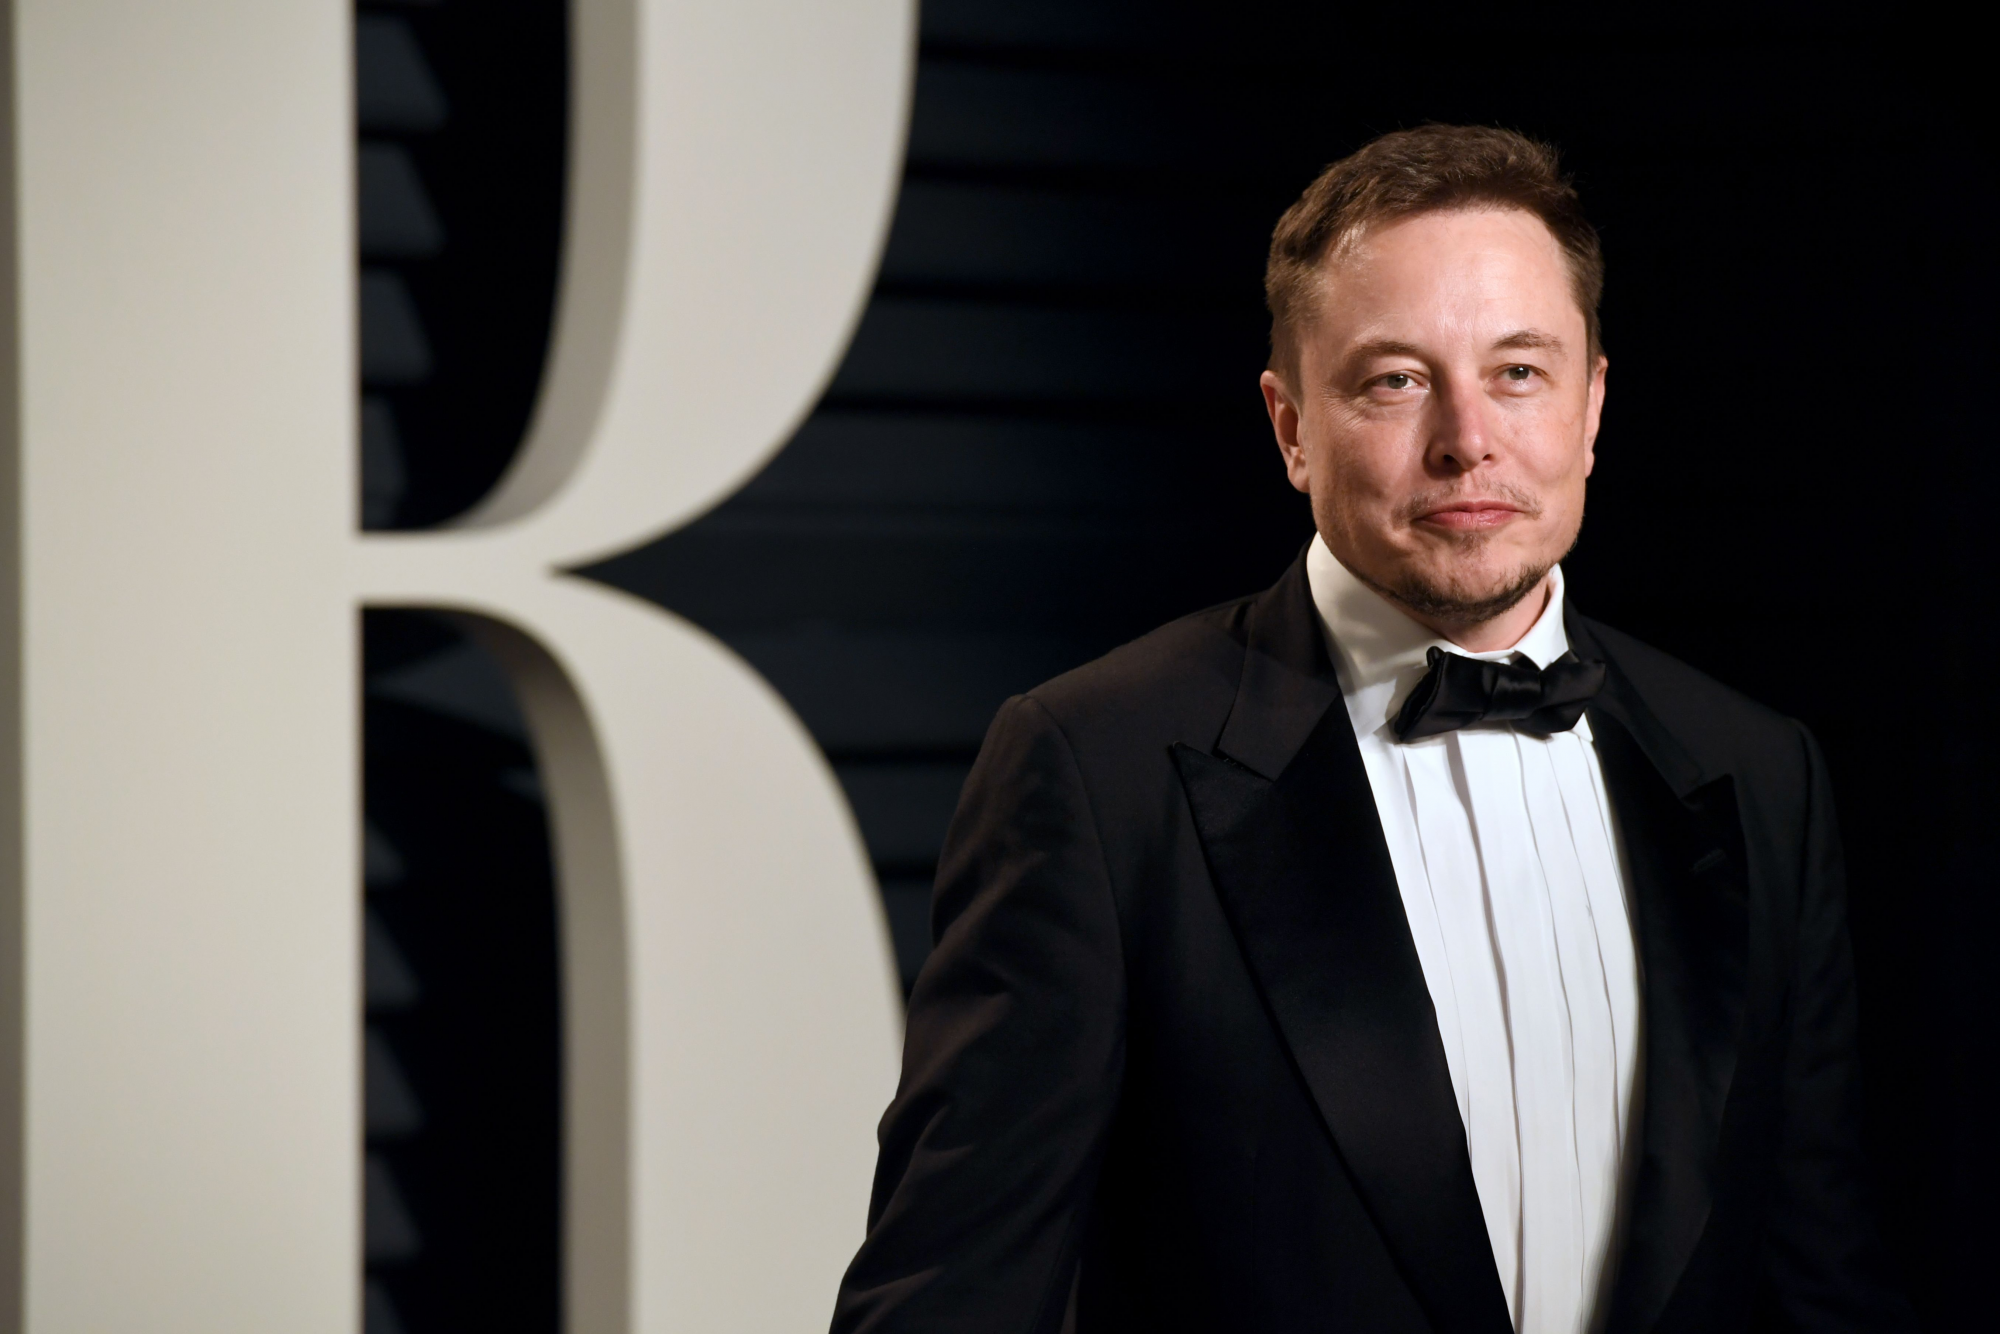 HBO to Develop Scripted Series About Elon Musk's SpaceX